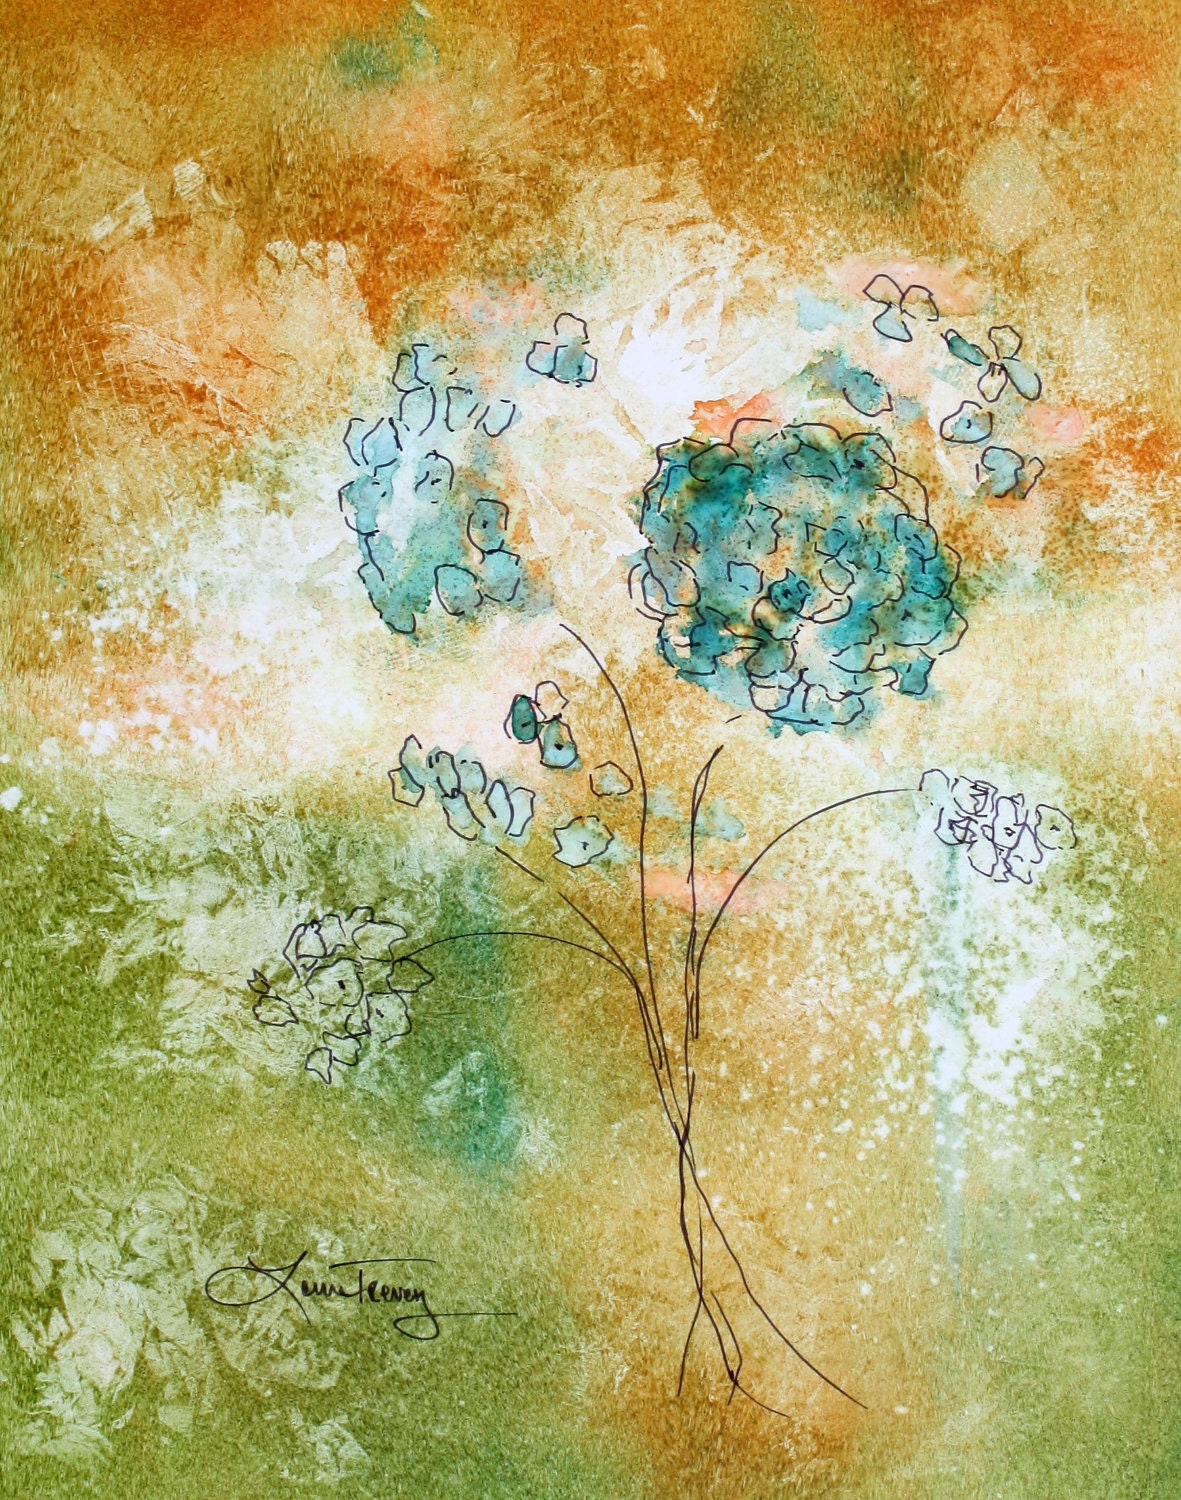 Abstract Floral in Watercolor